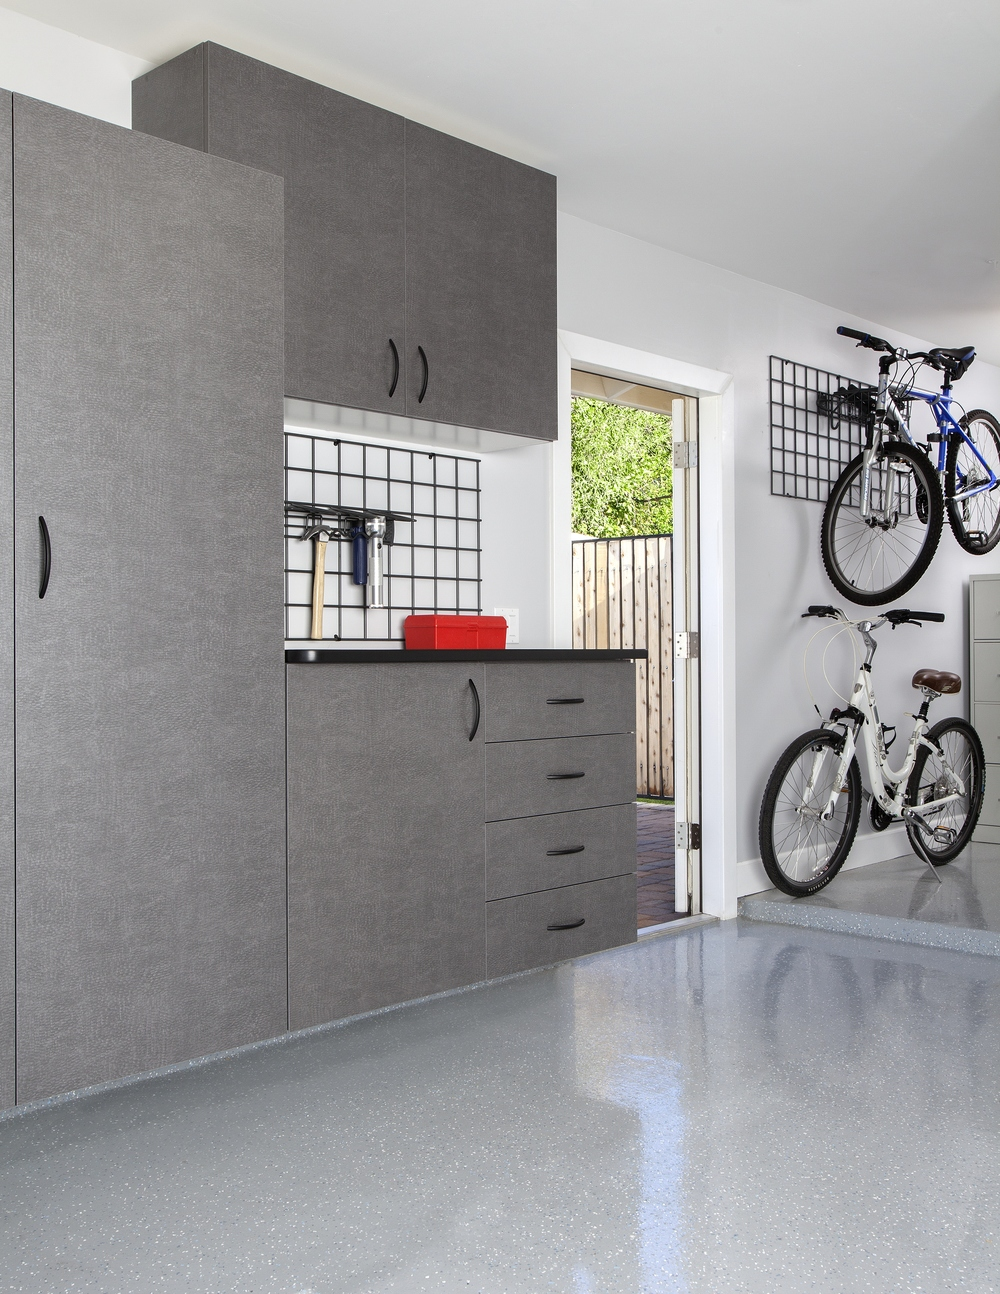 Pewter Cabinets with Ebony Star Workbench-Bike Racks 2012.jpg